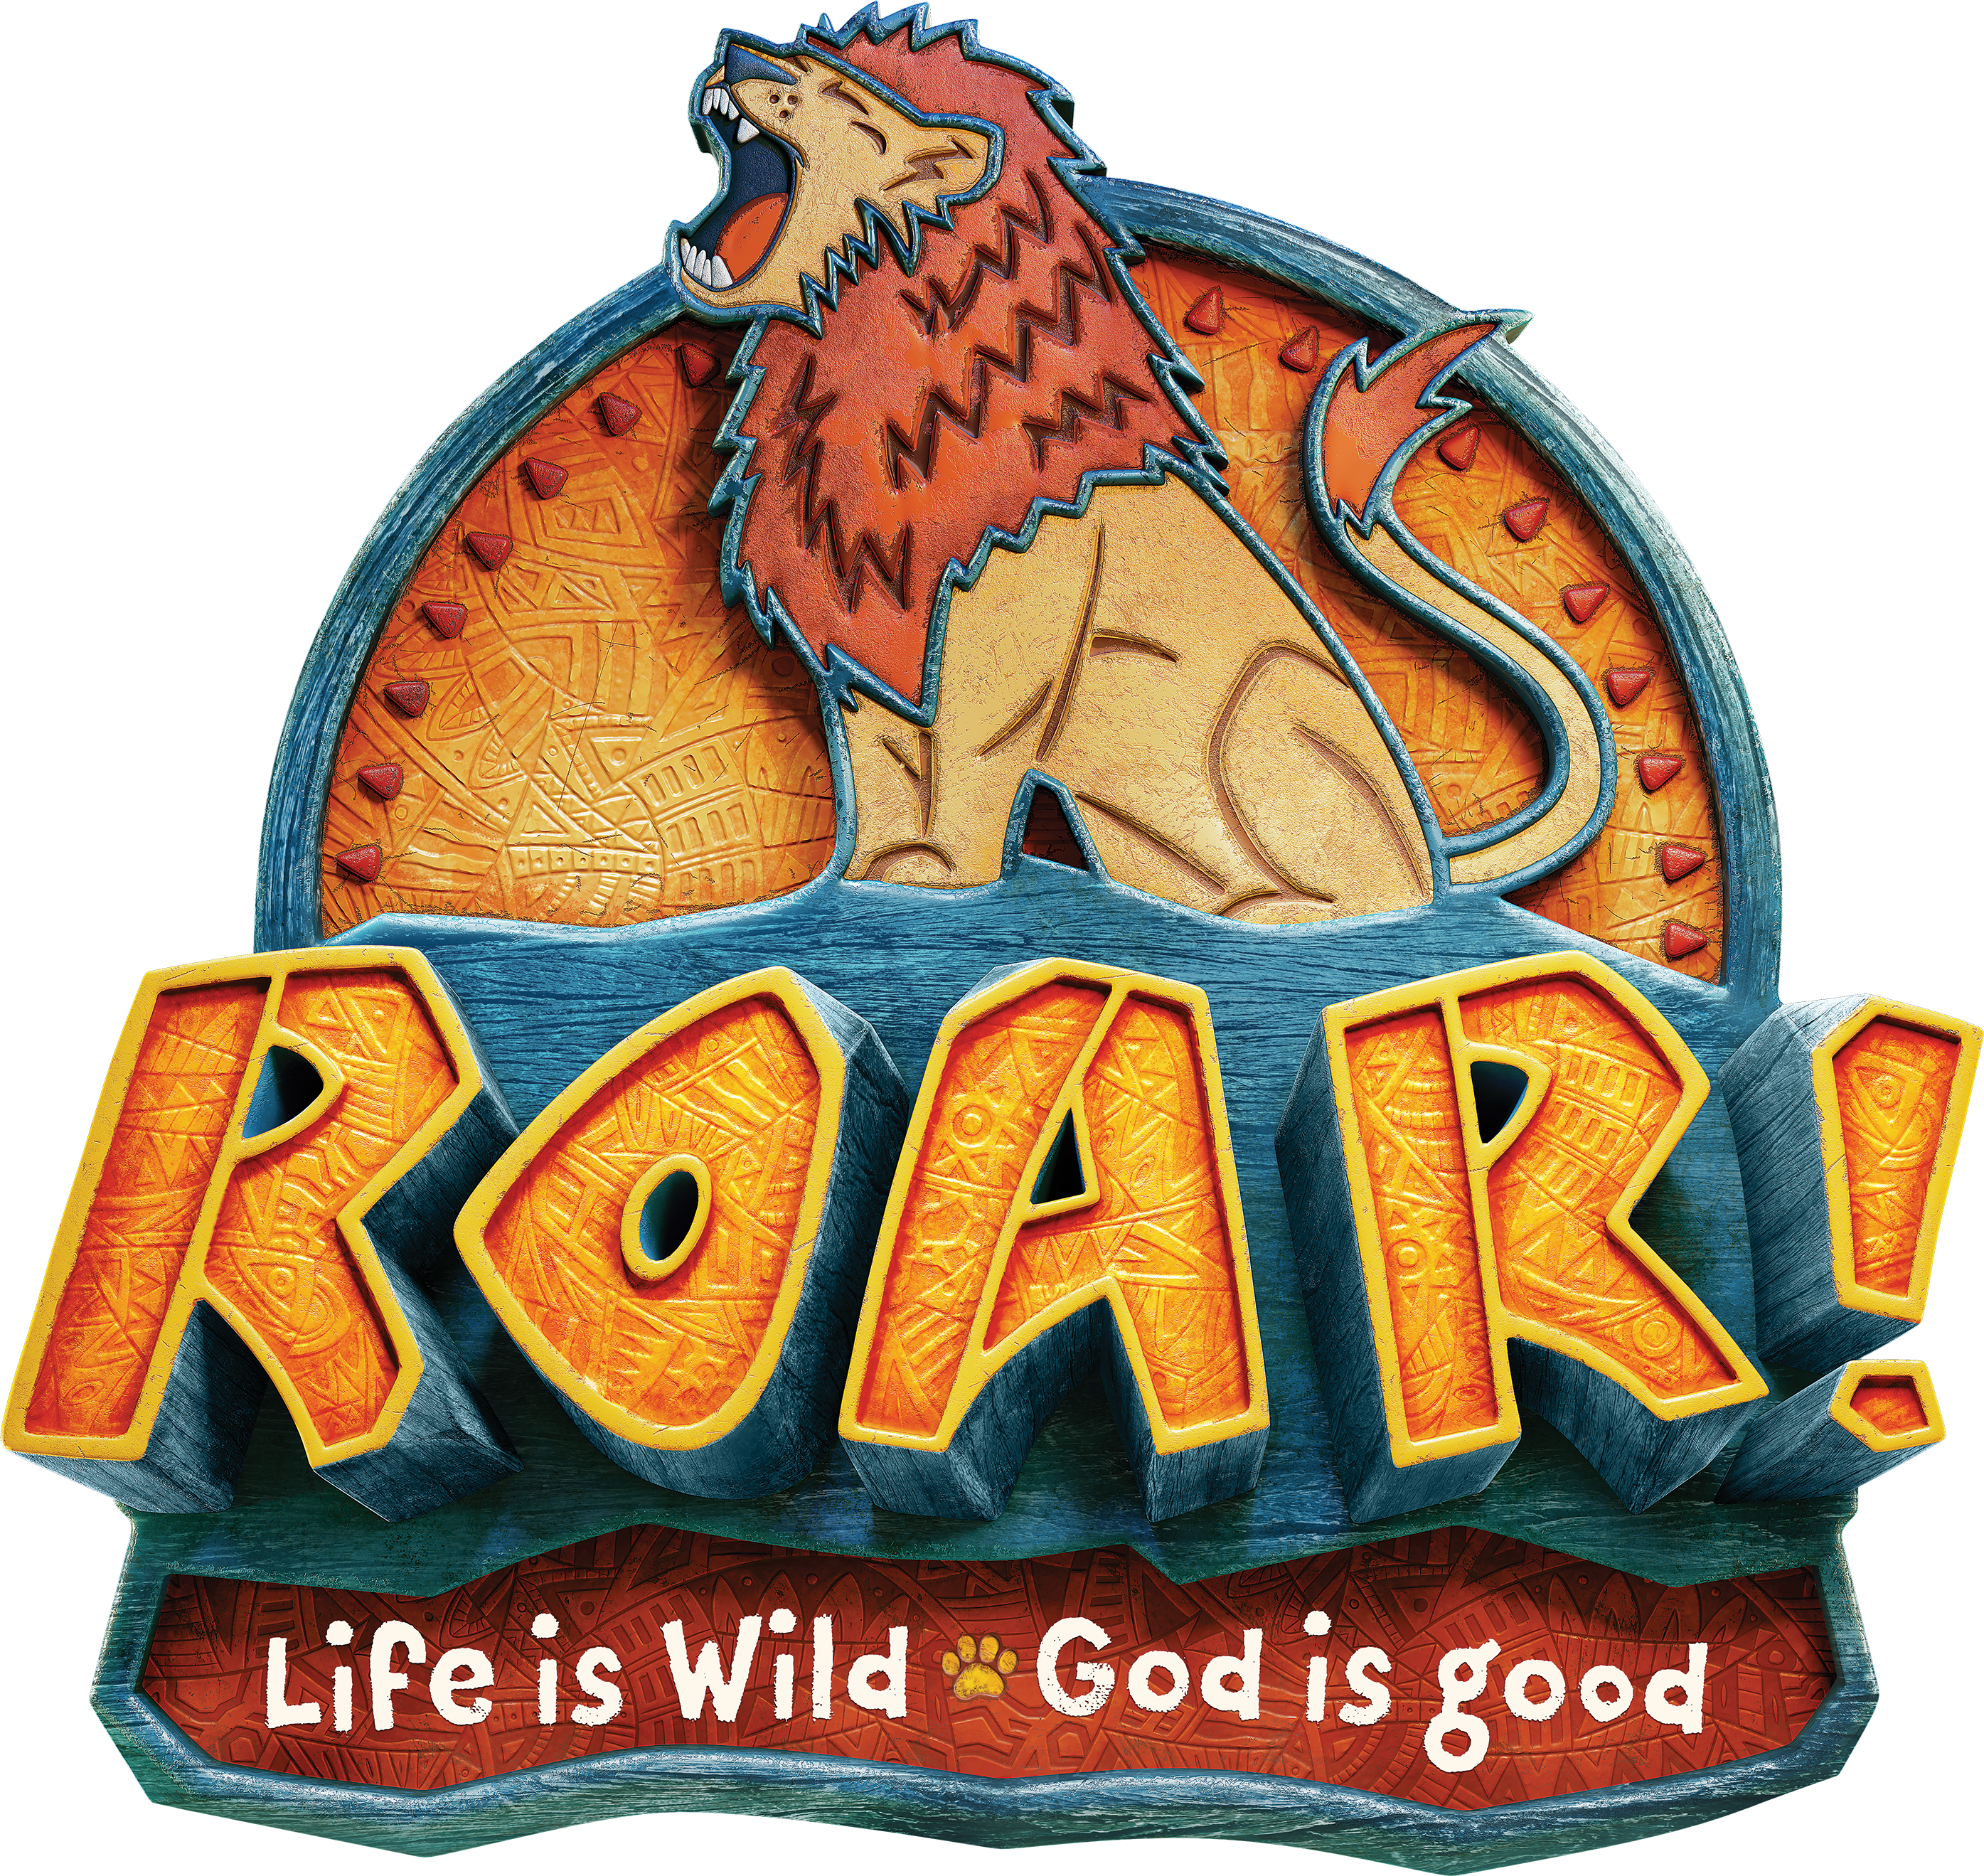 Download the Roar VBS logo pack here! #roarvbs #groupvbs.